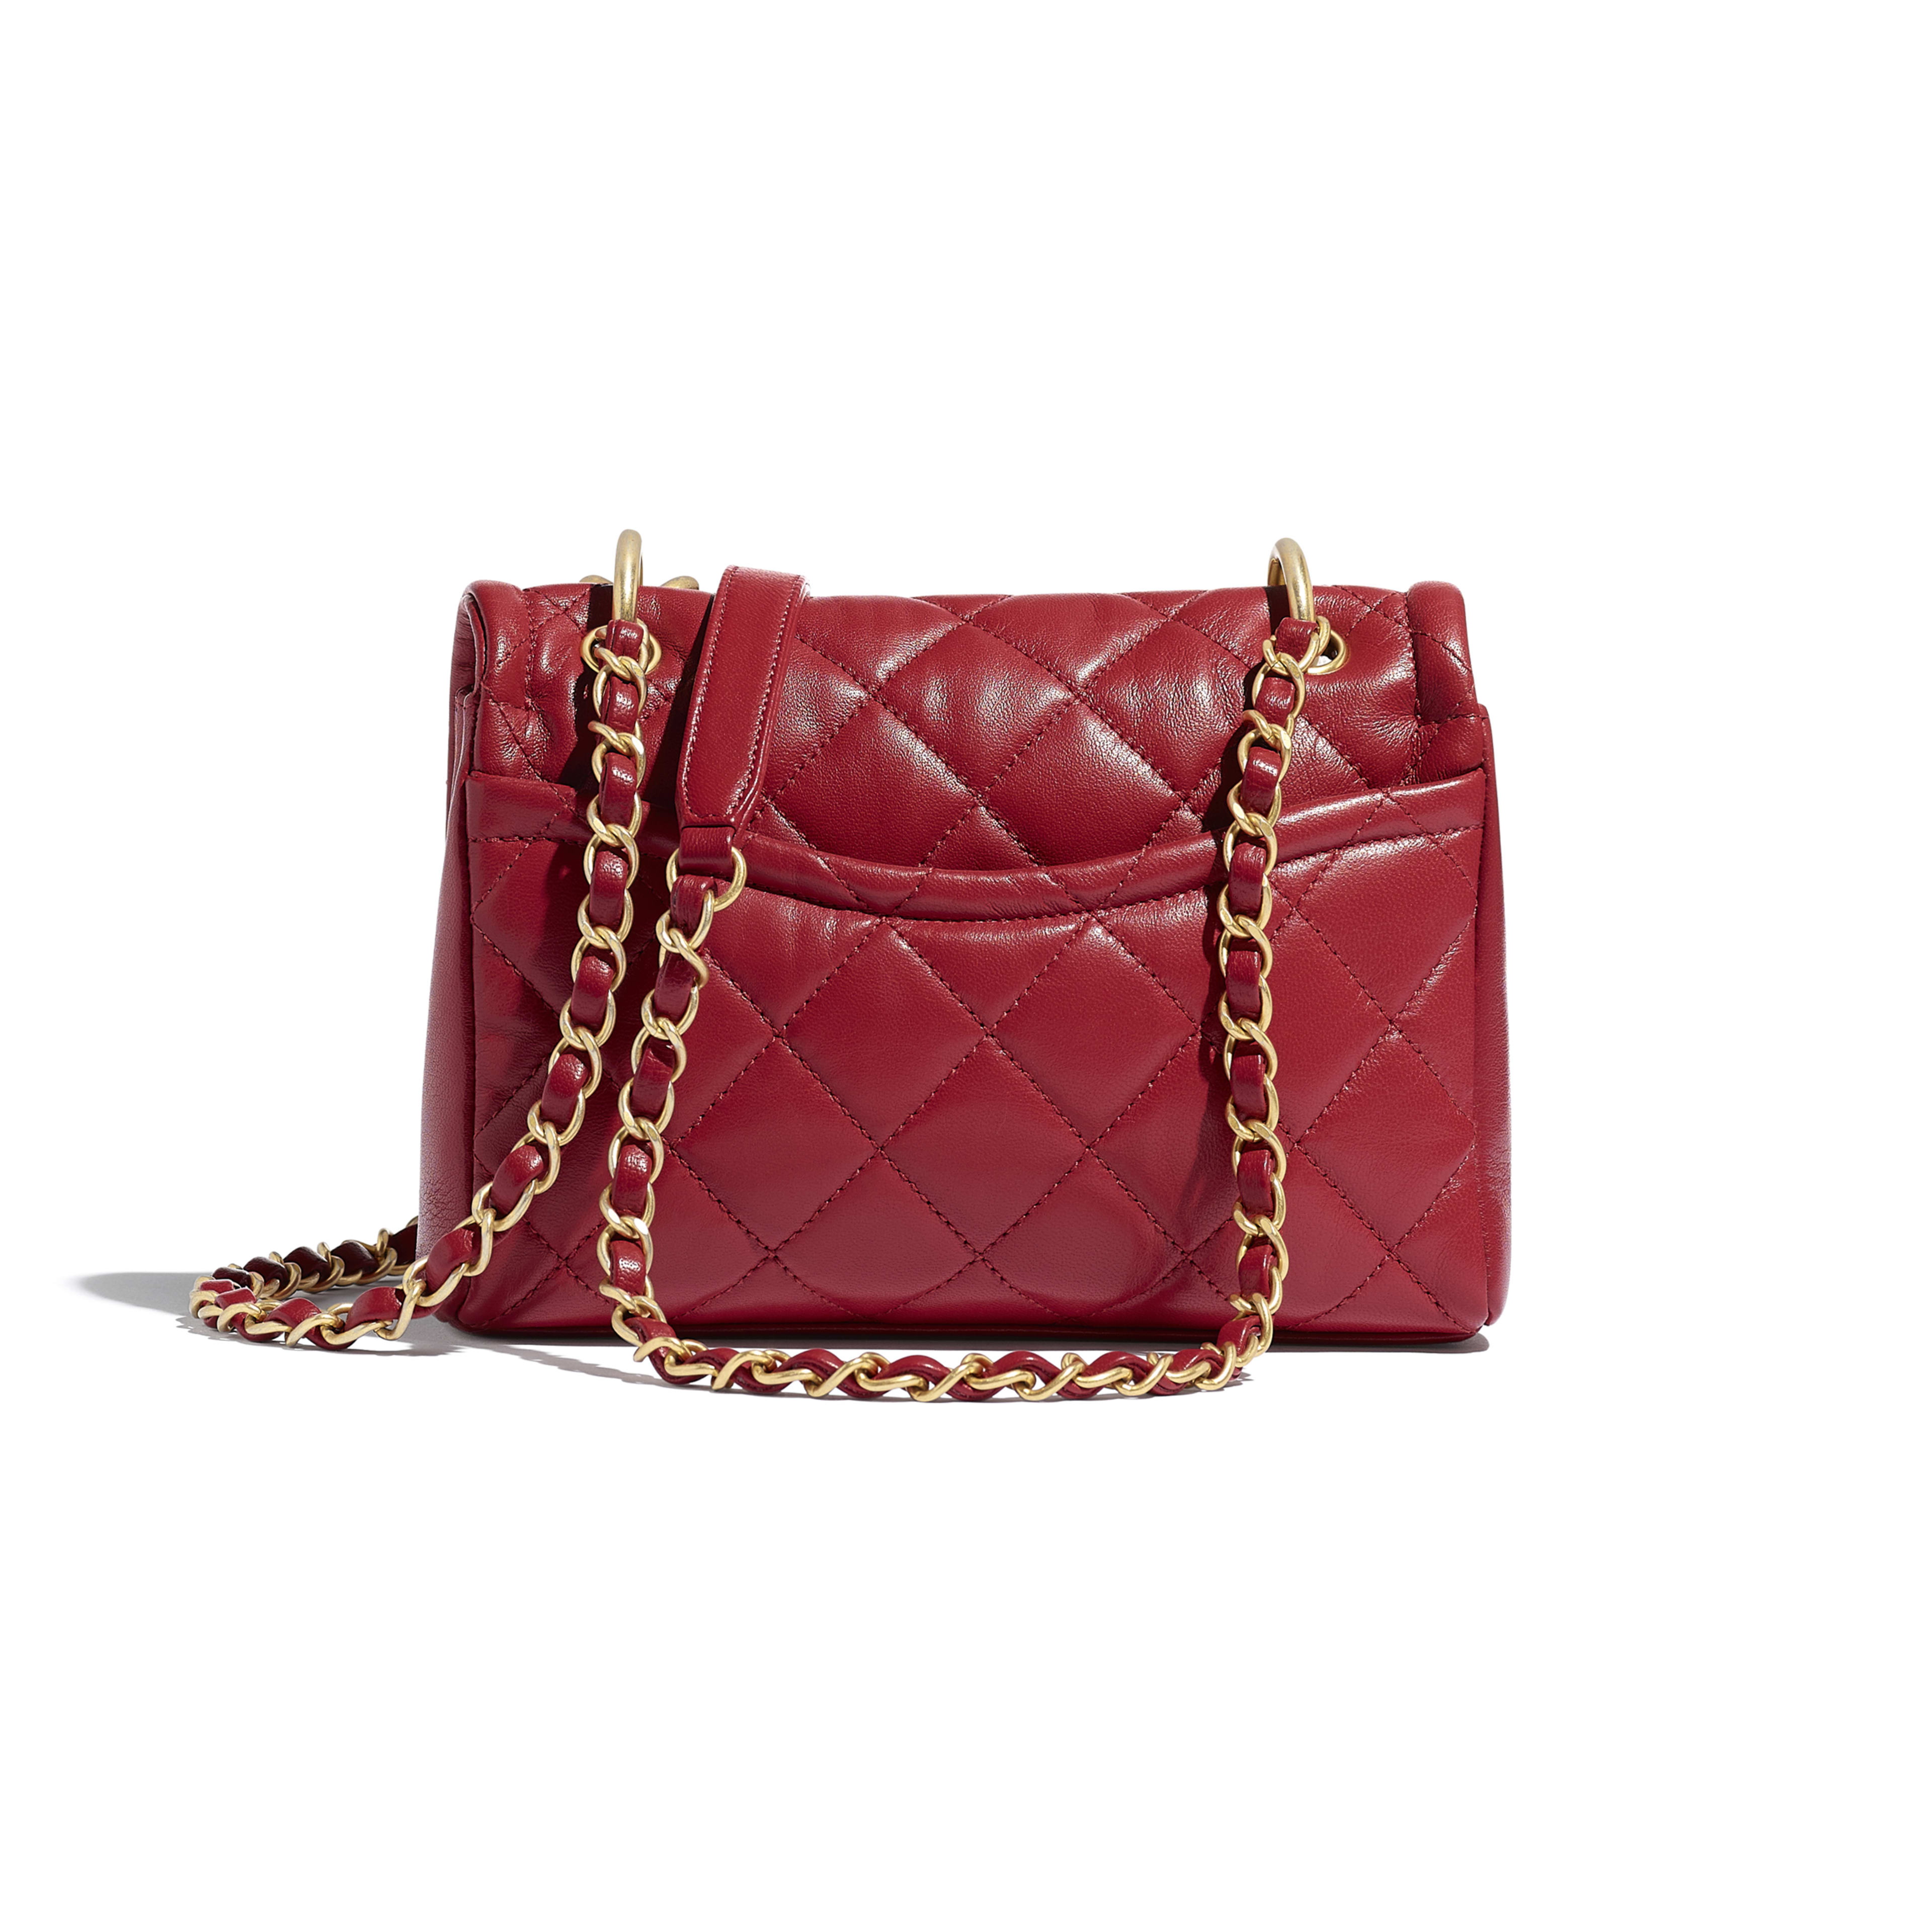 Flap Bag - Red - Lambskin - Alternative view - see full sized version